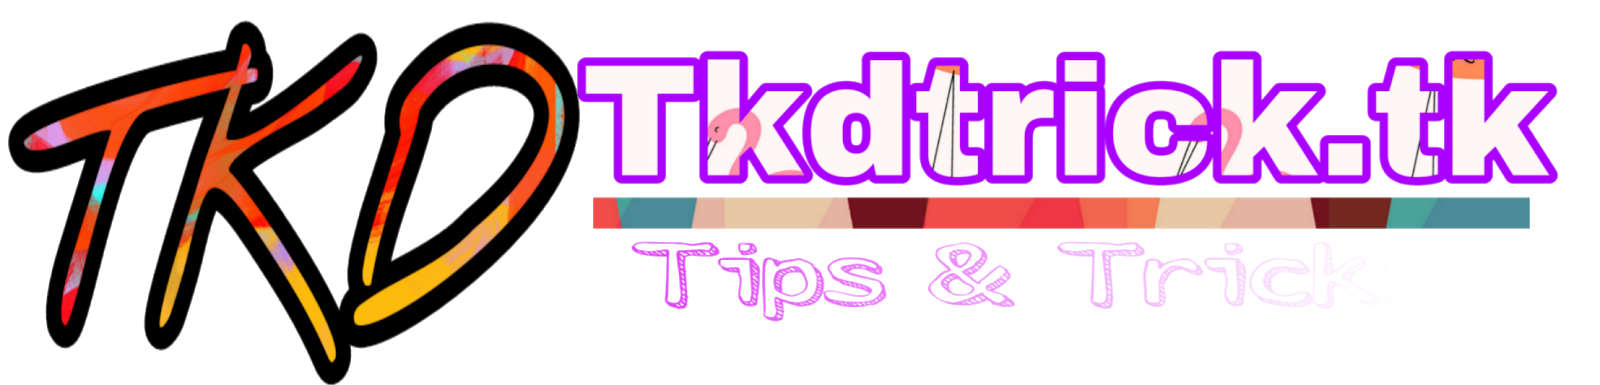 Tkdtrick.tk | Tkdtricks is based on tricks and news of offers, codes, coupons etc.